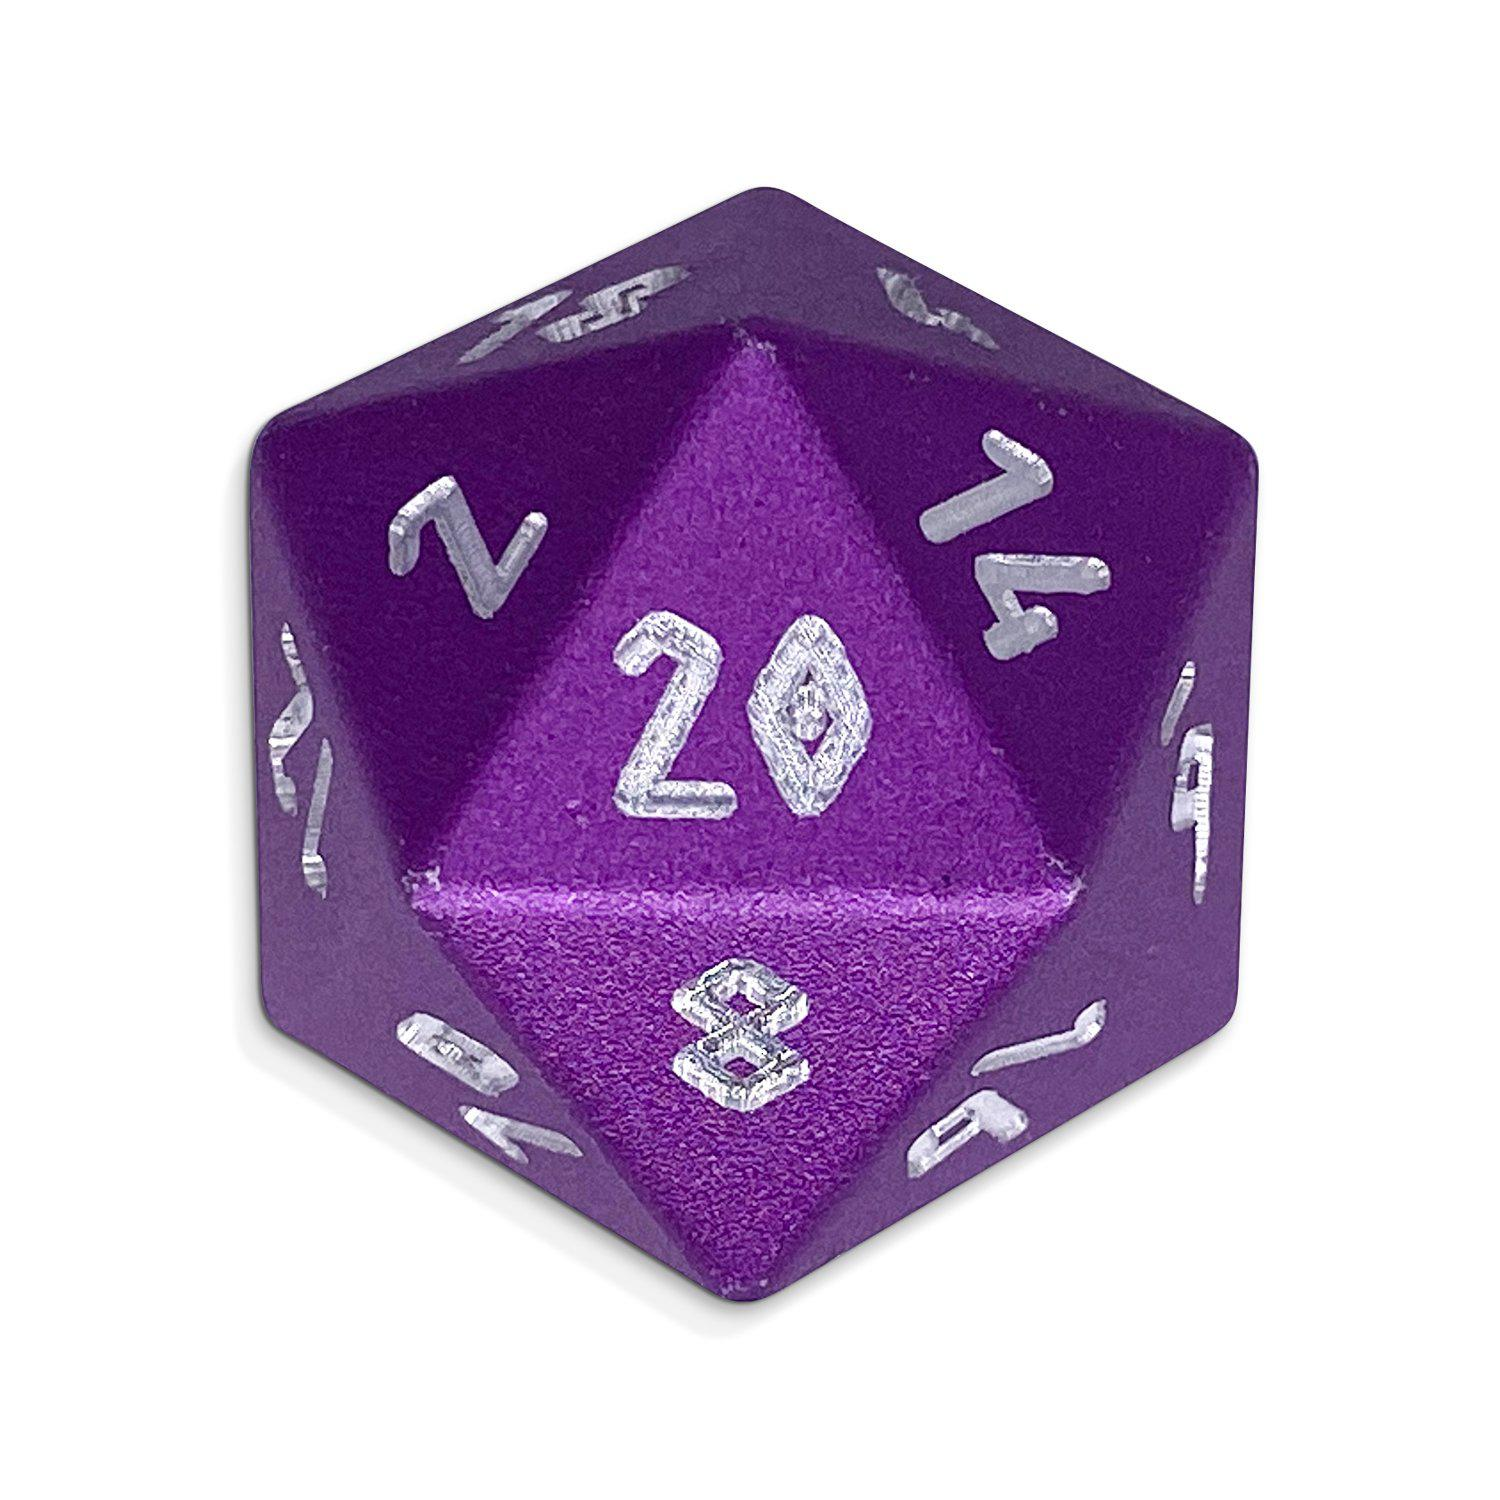 Lich Purple - Single D20 - Aluminum Dice